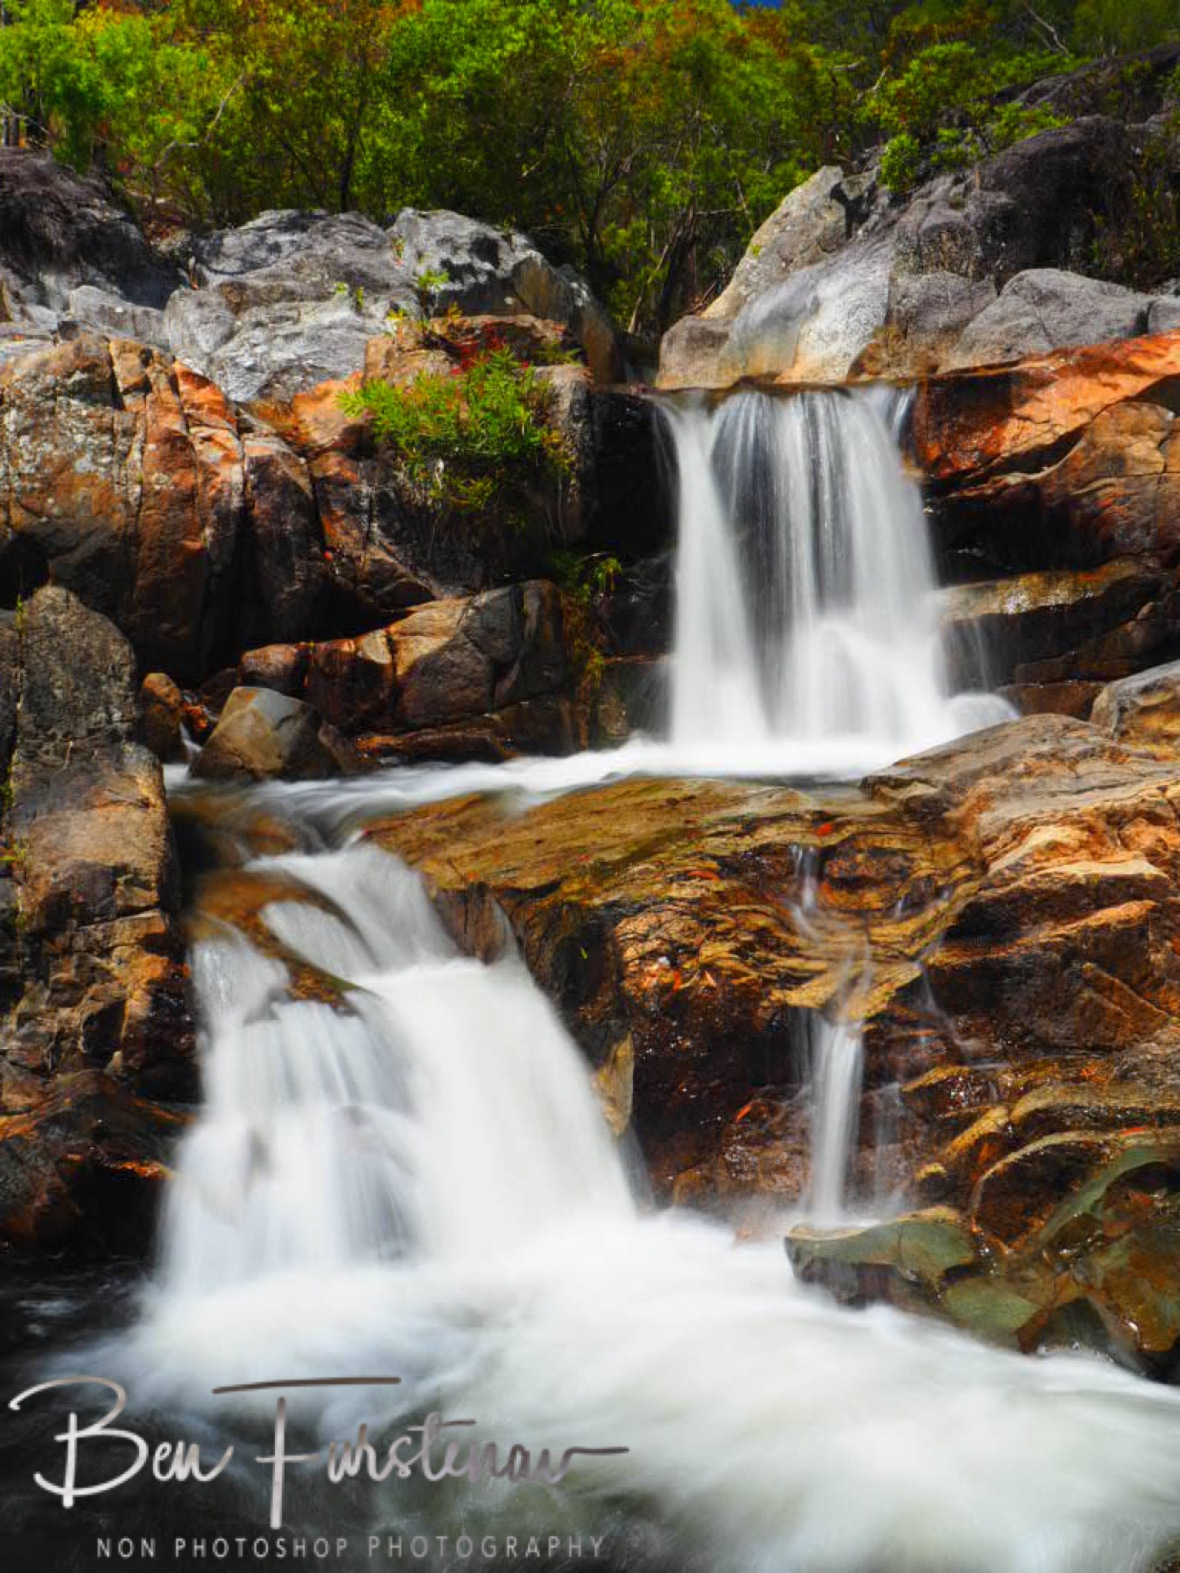 Cascading waters at Upper Davies Creek, Atherton Tablelands, Far North Queensland, Australia